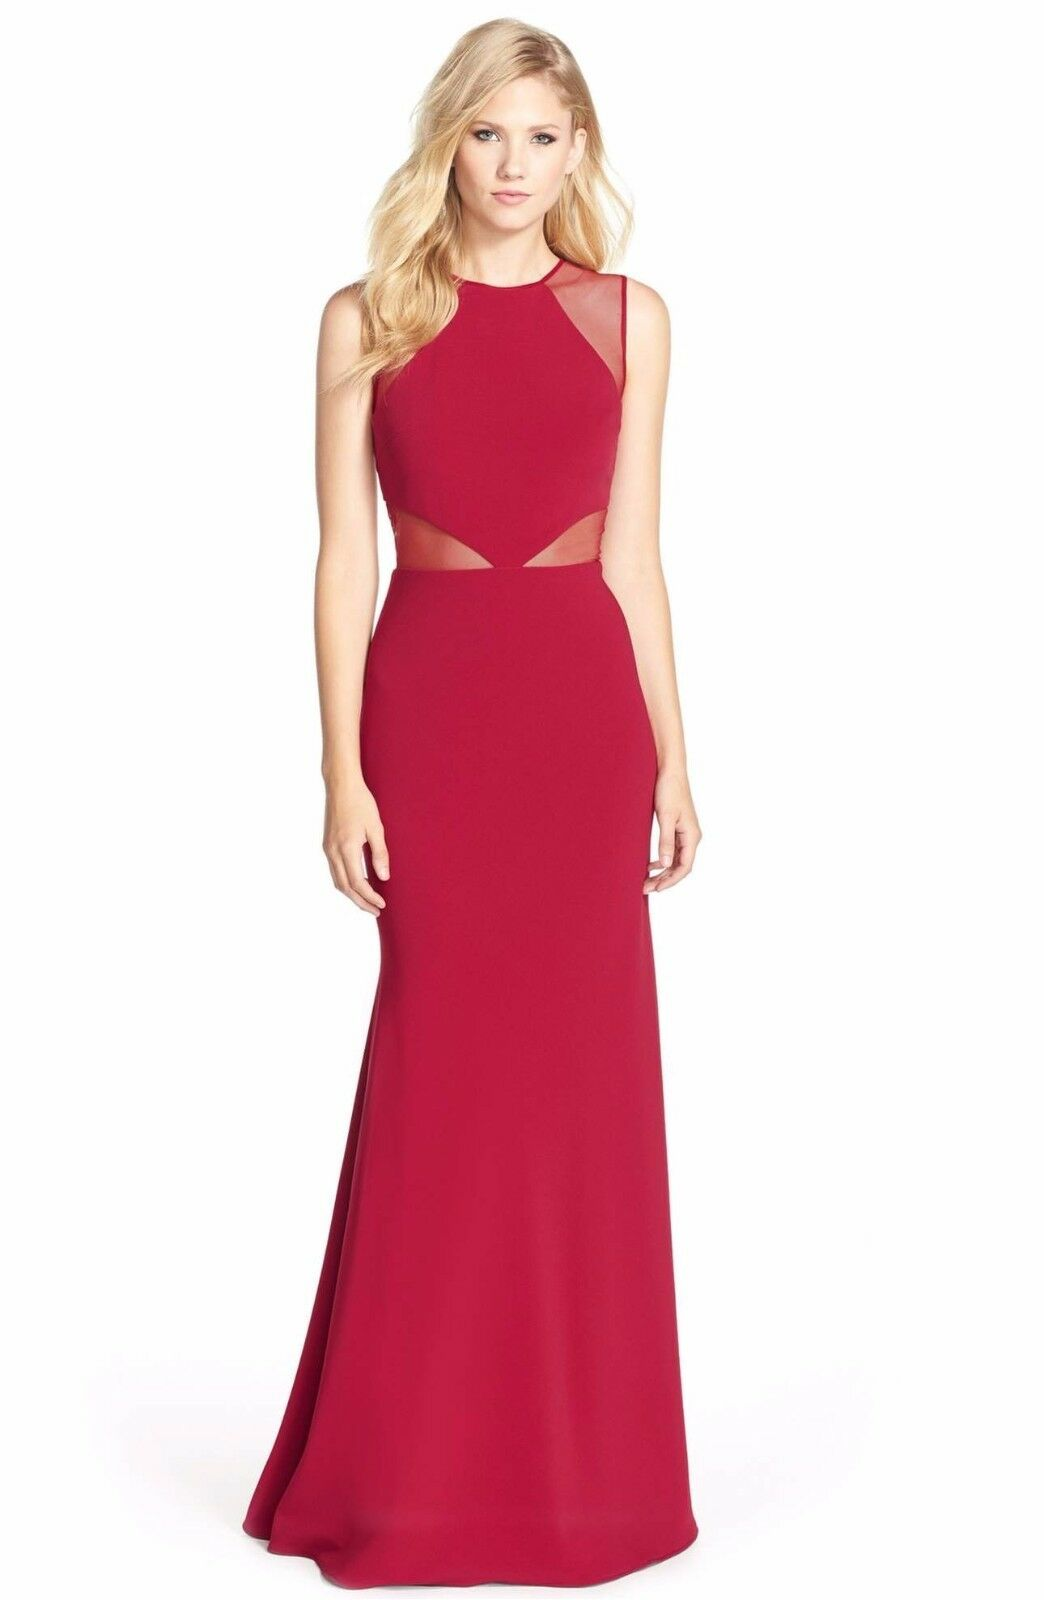 UPC 628707744128 - Js Collections Illusion Inset Gown | upcitemdb.com